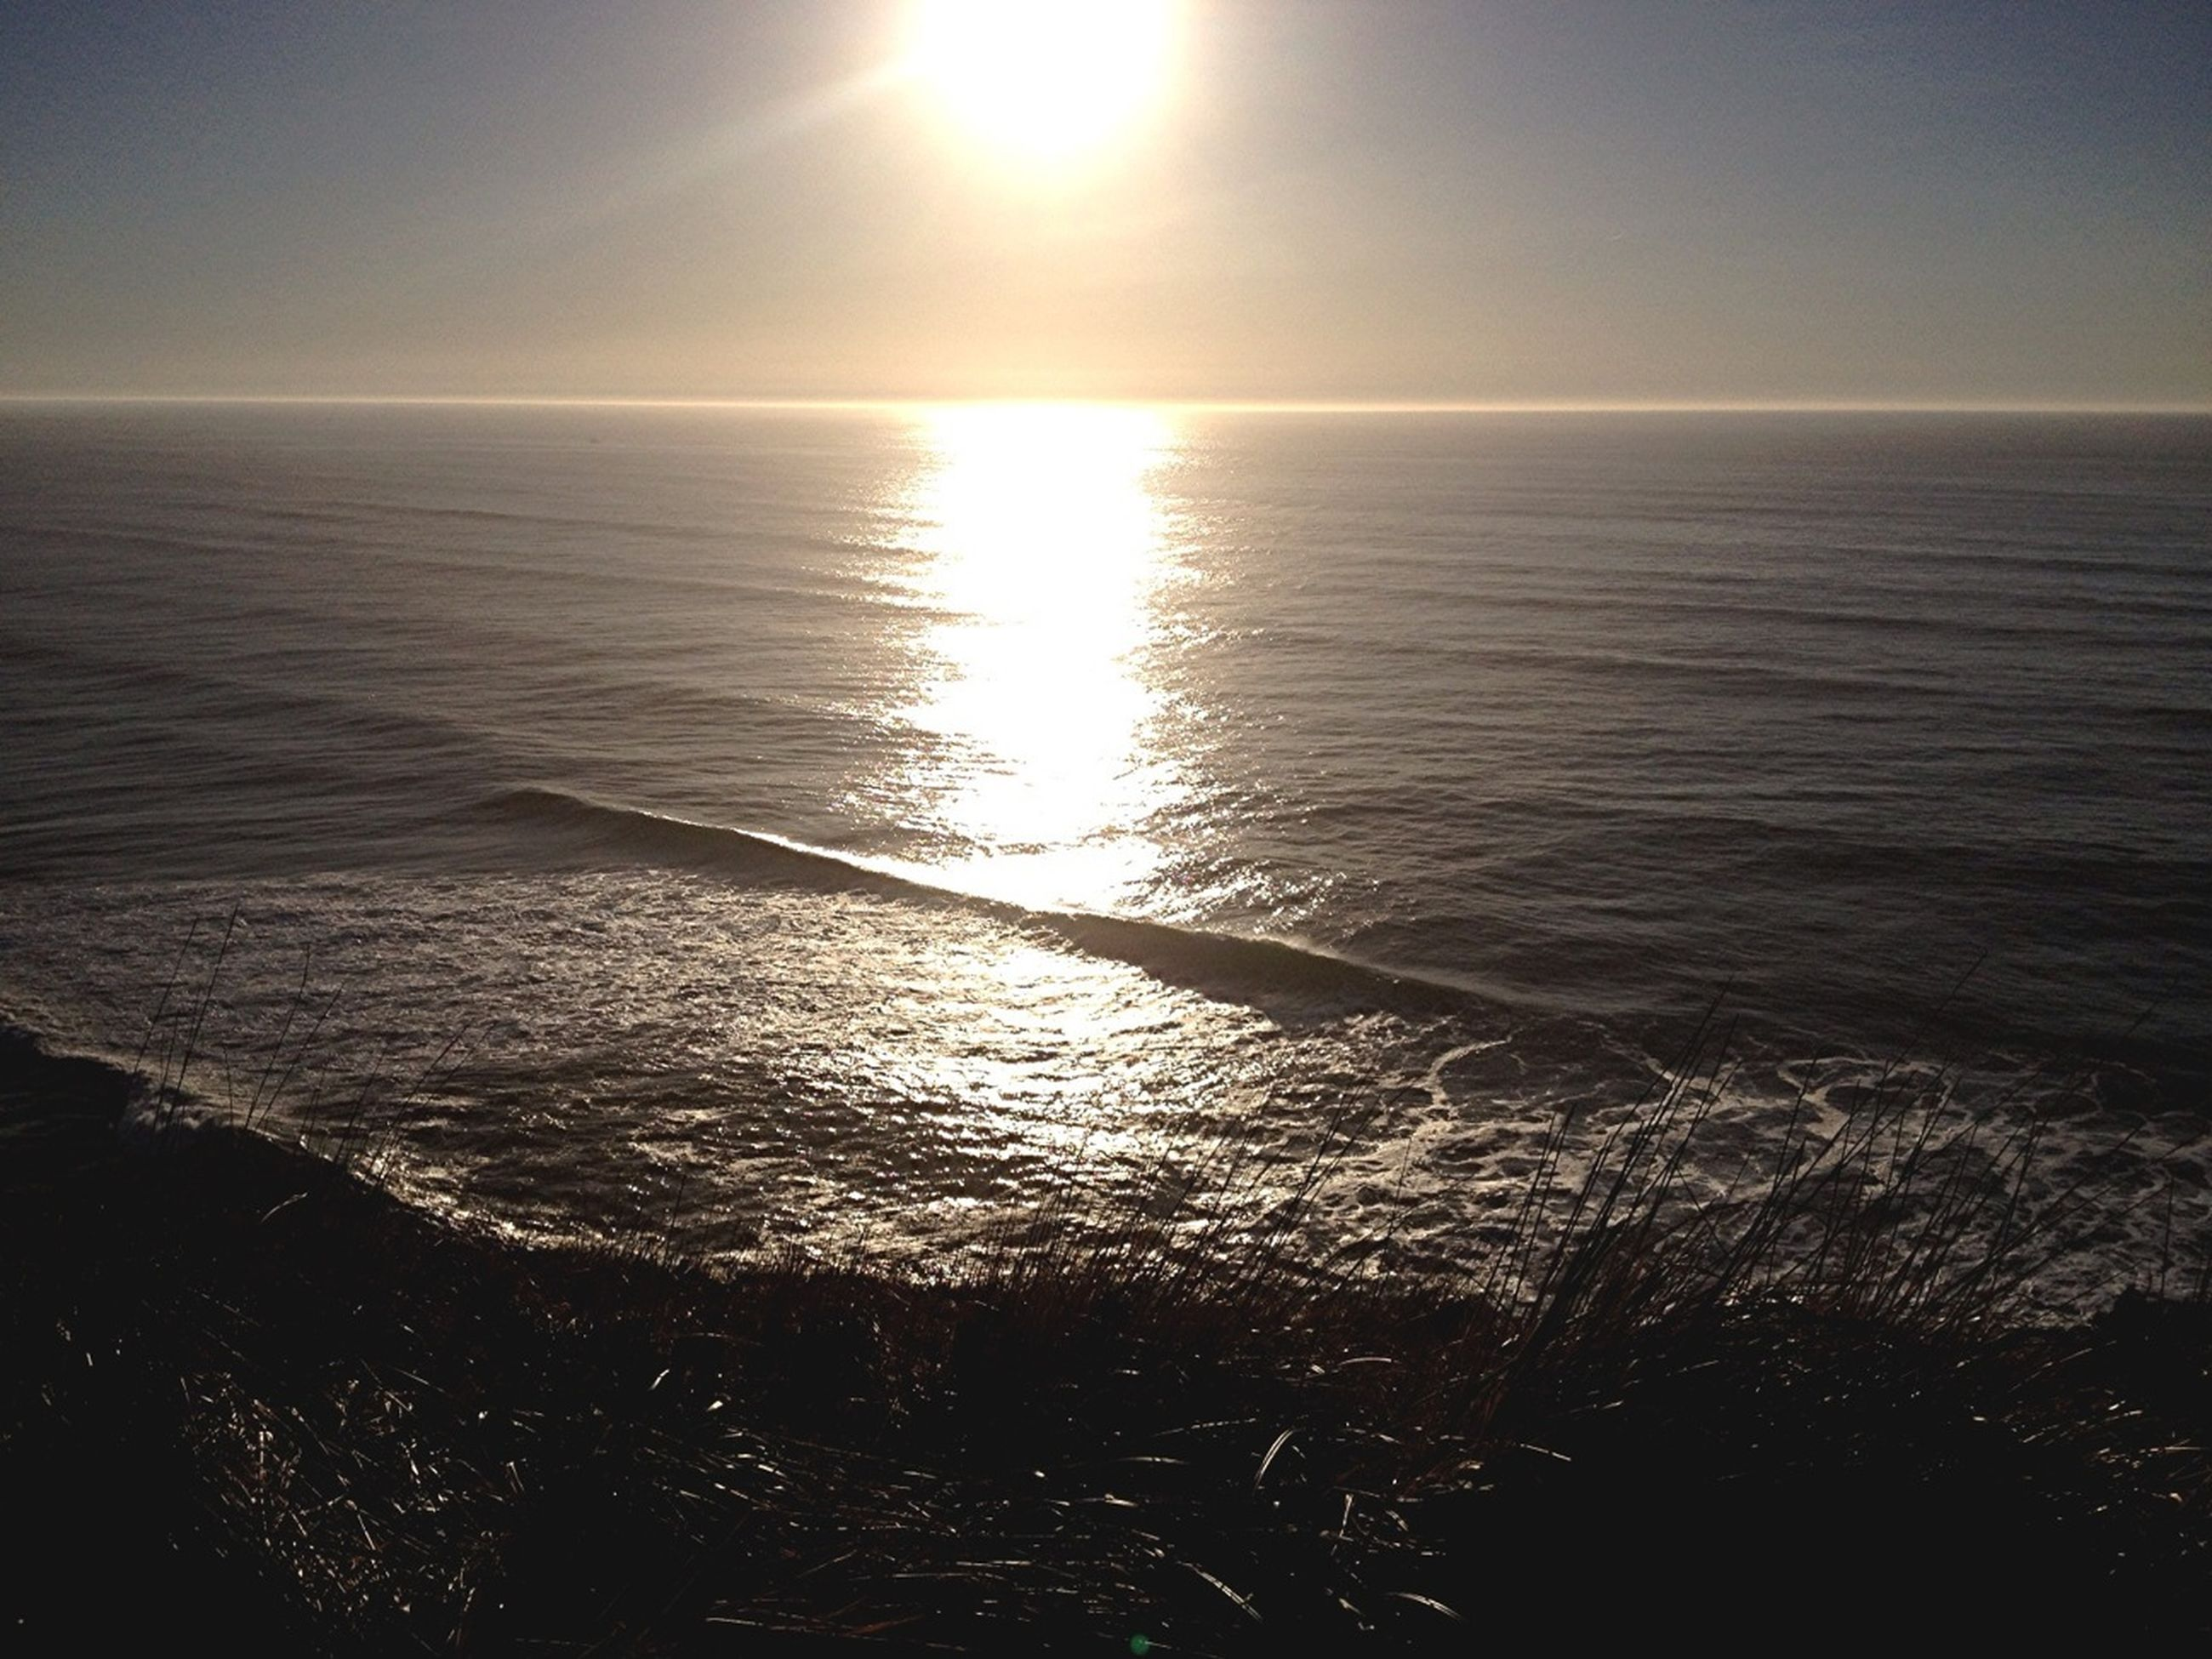 sea, water, horizon over water, tranquil scene, scenics, tranquility, sun, beauty in nature, sunset, reflection, nature, idyllic, sky, seascape, sunlight, rippled, clear sky, beach, calm, outdoors